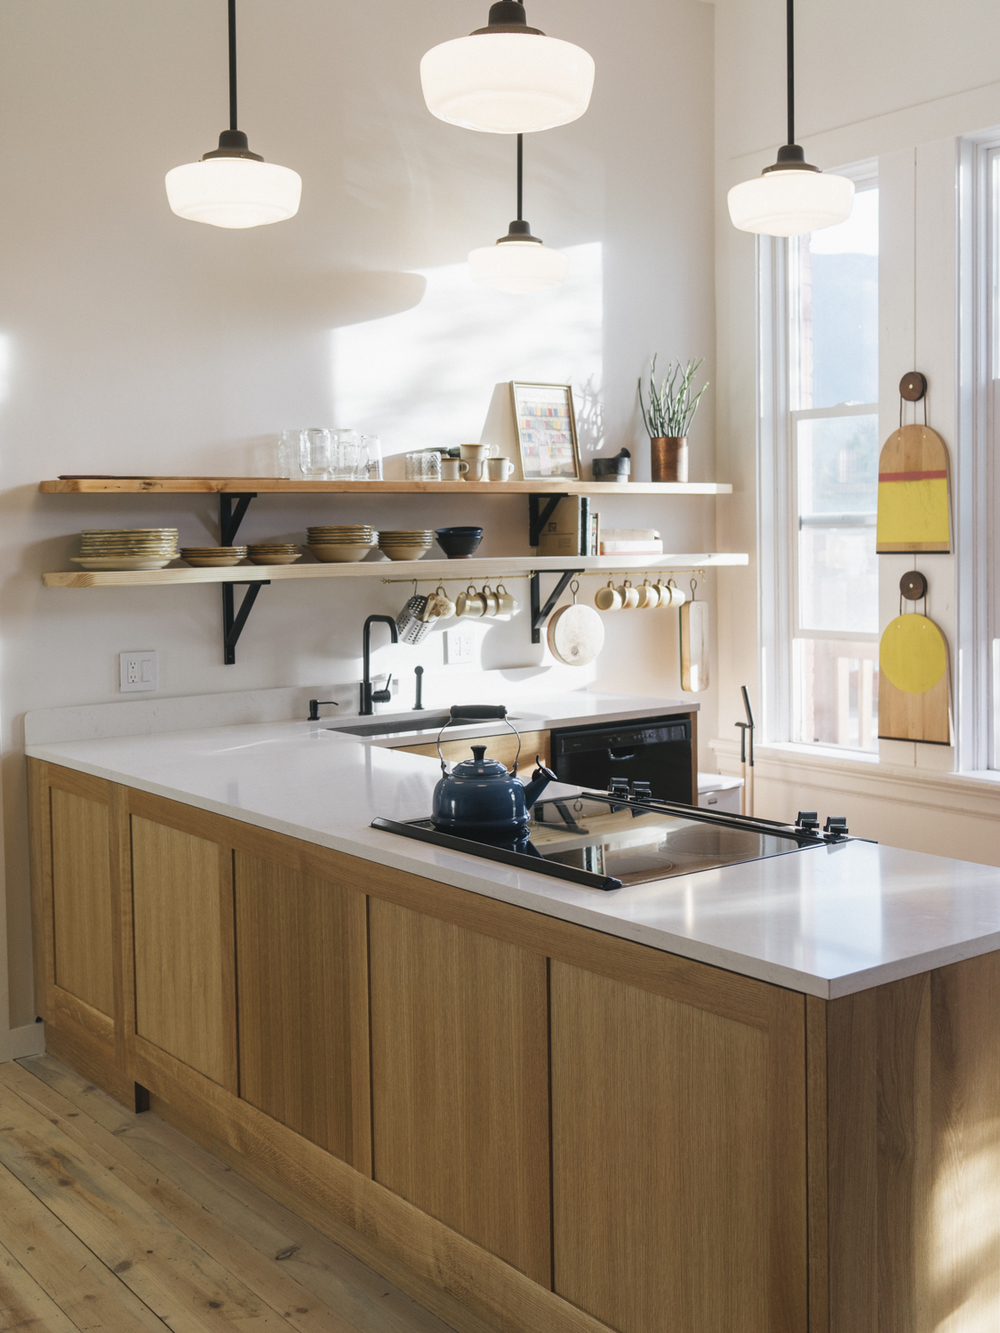 Our communal kitchen, a place to gather, imbibe, be inspired and make friends with cutting boards from  M.Crow  in Lostine